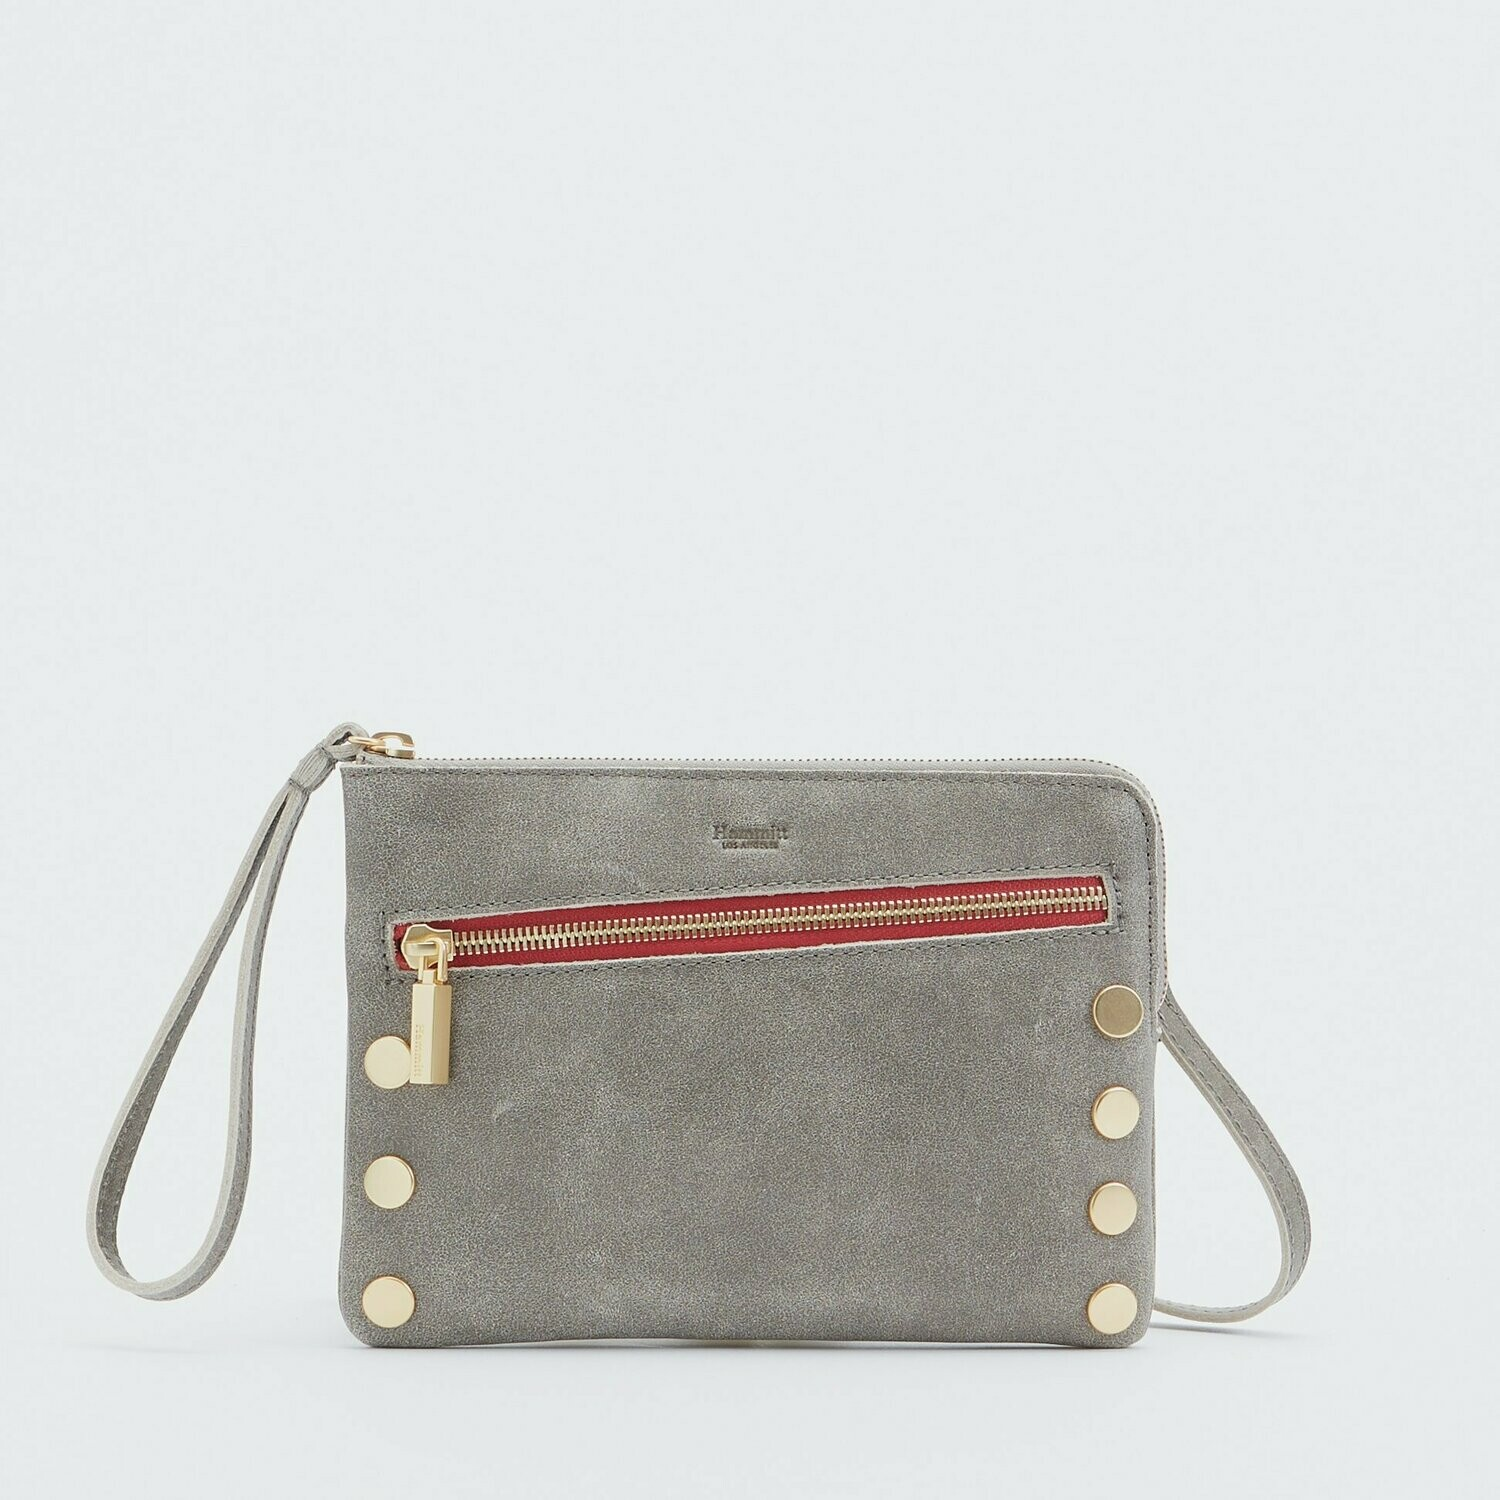 Hammitt Nash Small 2 Pewter with Brushed Gold Hardware